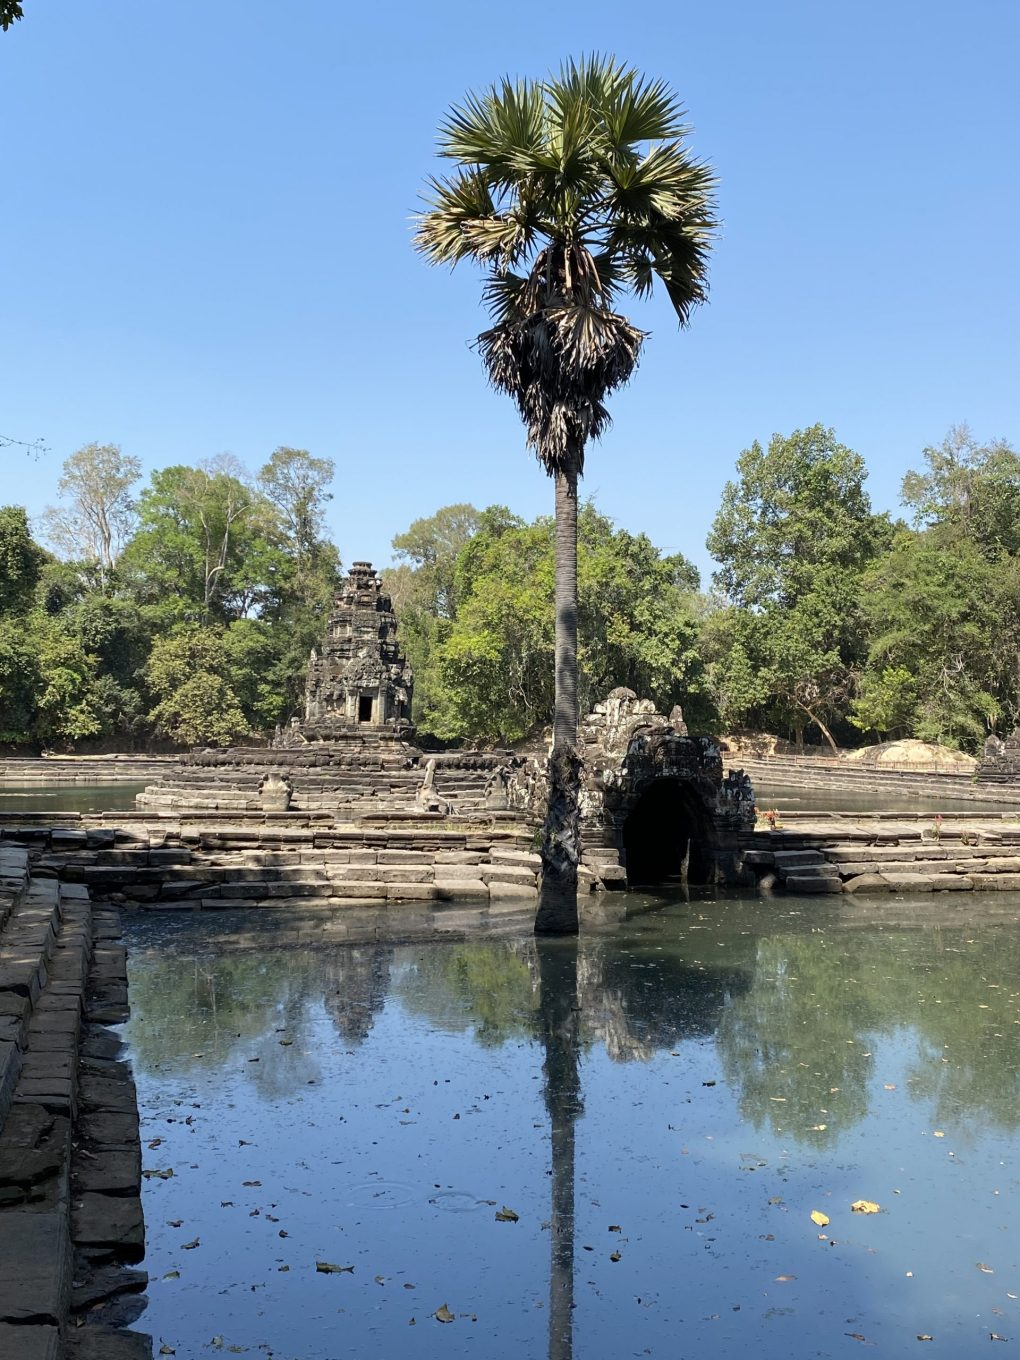 temple in Angkor Archeological Park with aqueducts and palm trees